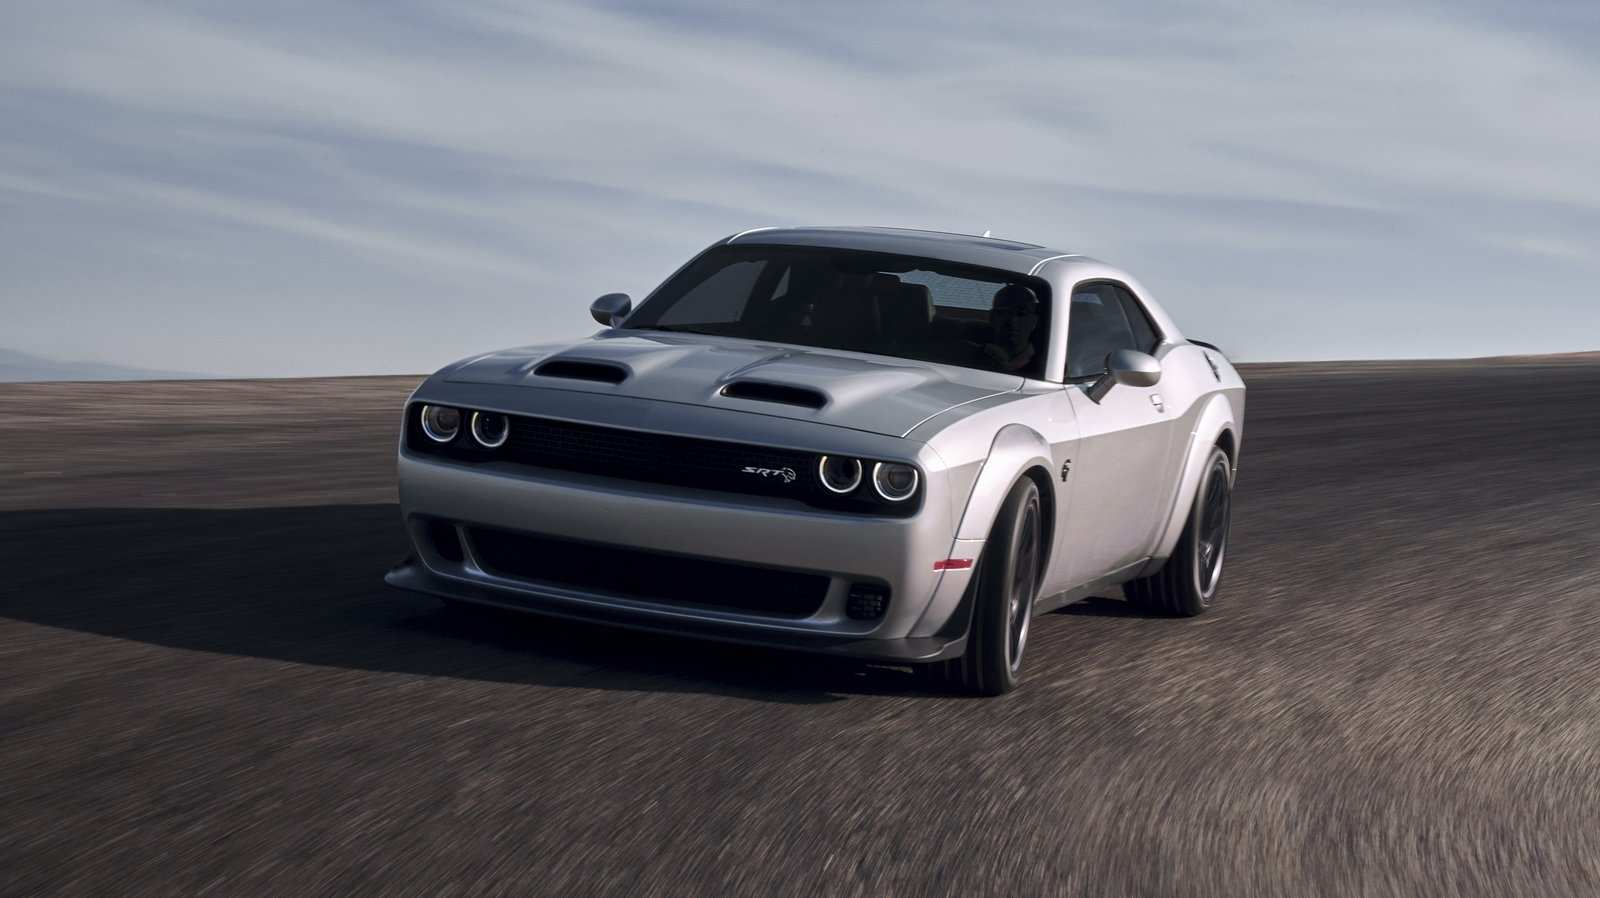 21 Great Best Dodge Challenger 2019 Rumors Exterior for Best Dodge Challenger 2019 Rumors